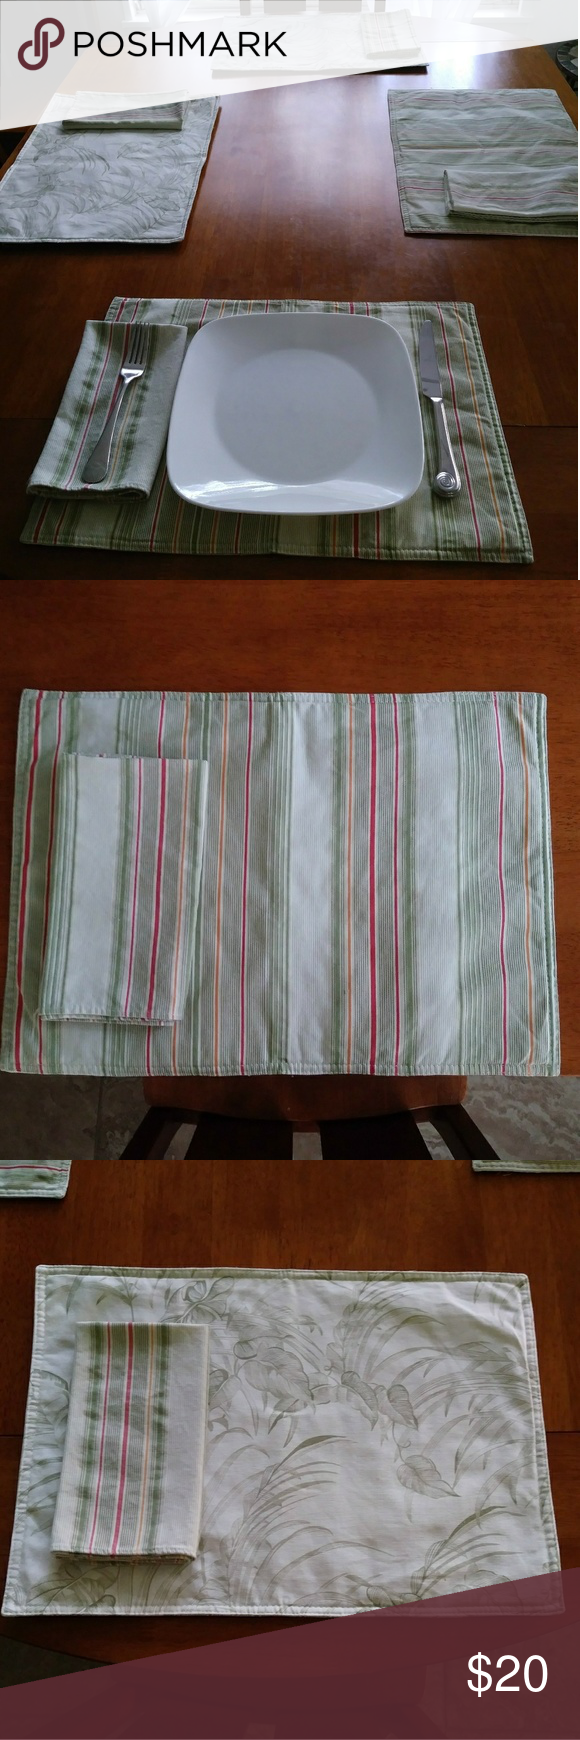 Bogo Deal Reversible Placemats With Napkins Fabric Tags Striped Napkin Placemats